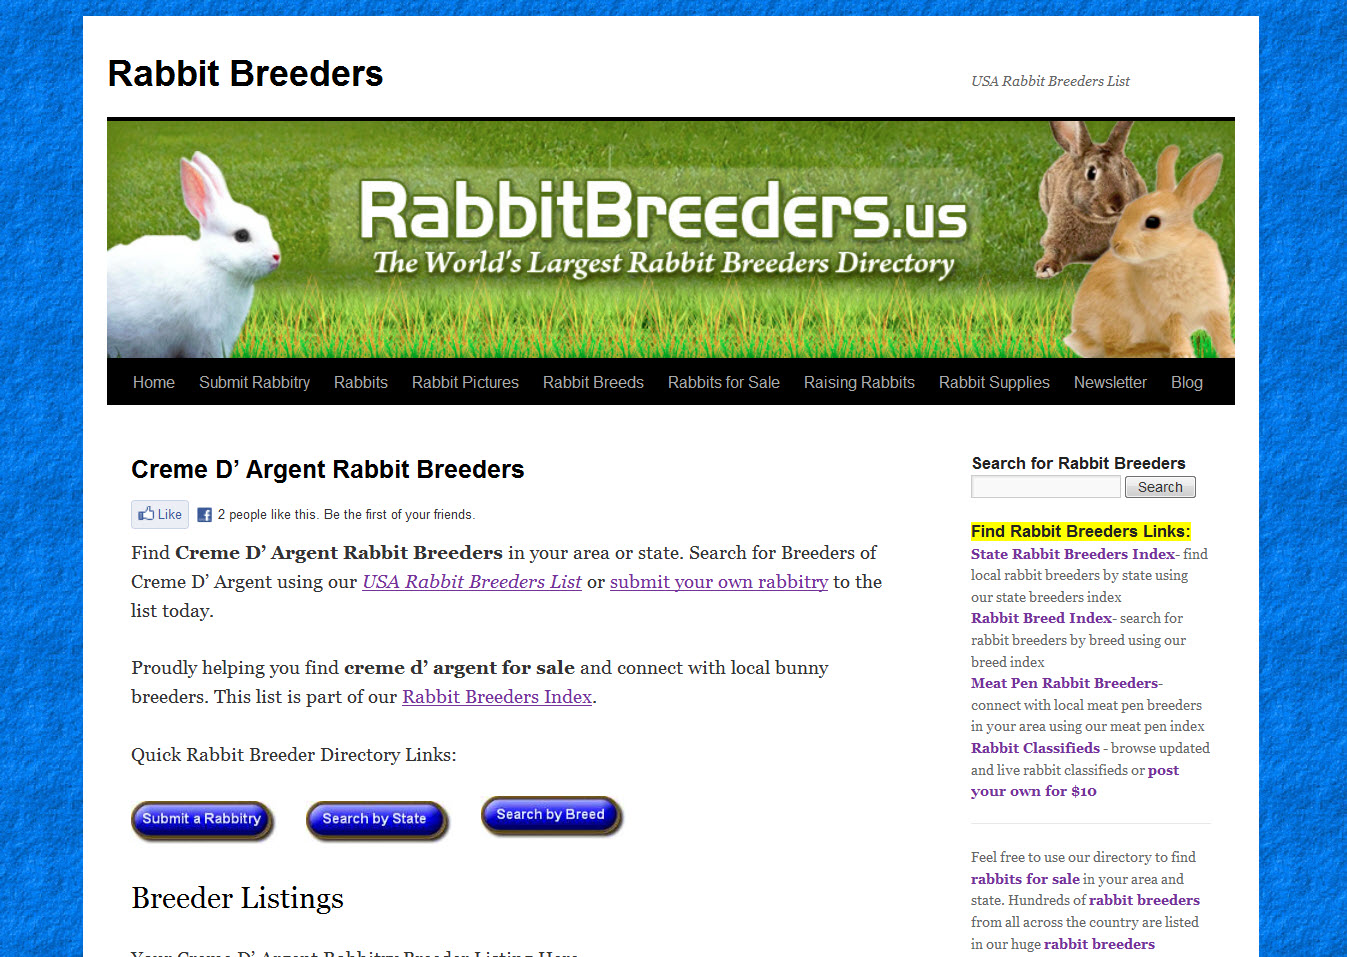 Creme D' Argent Rabbit Breeders